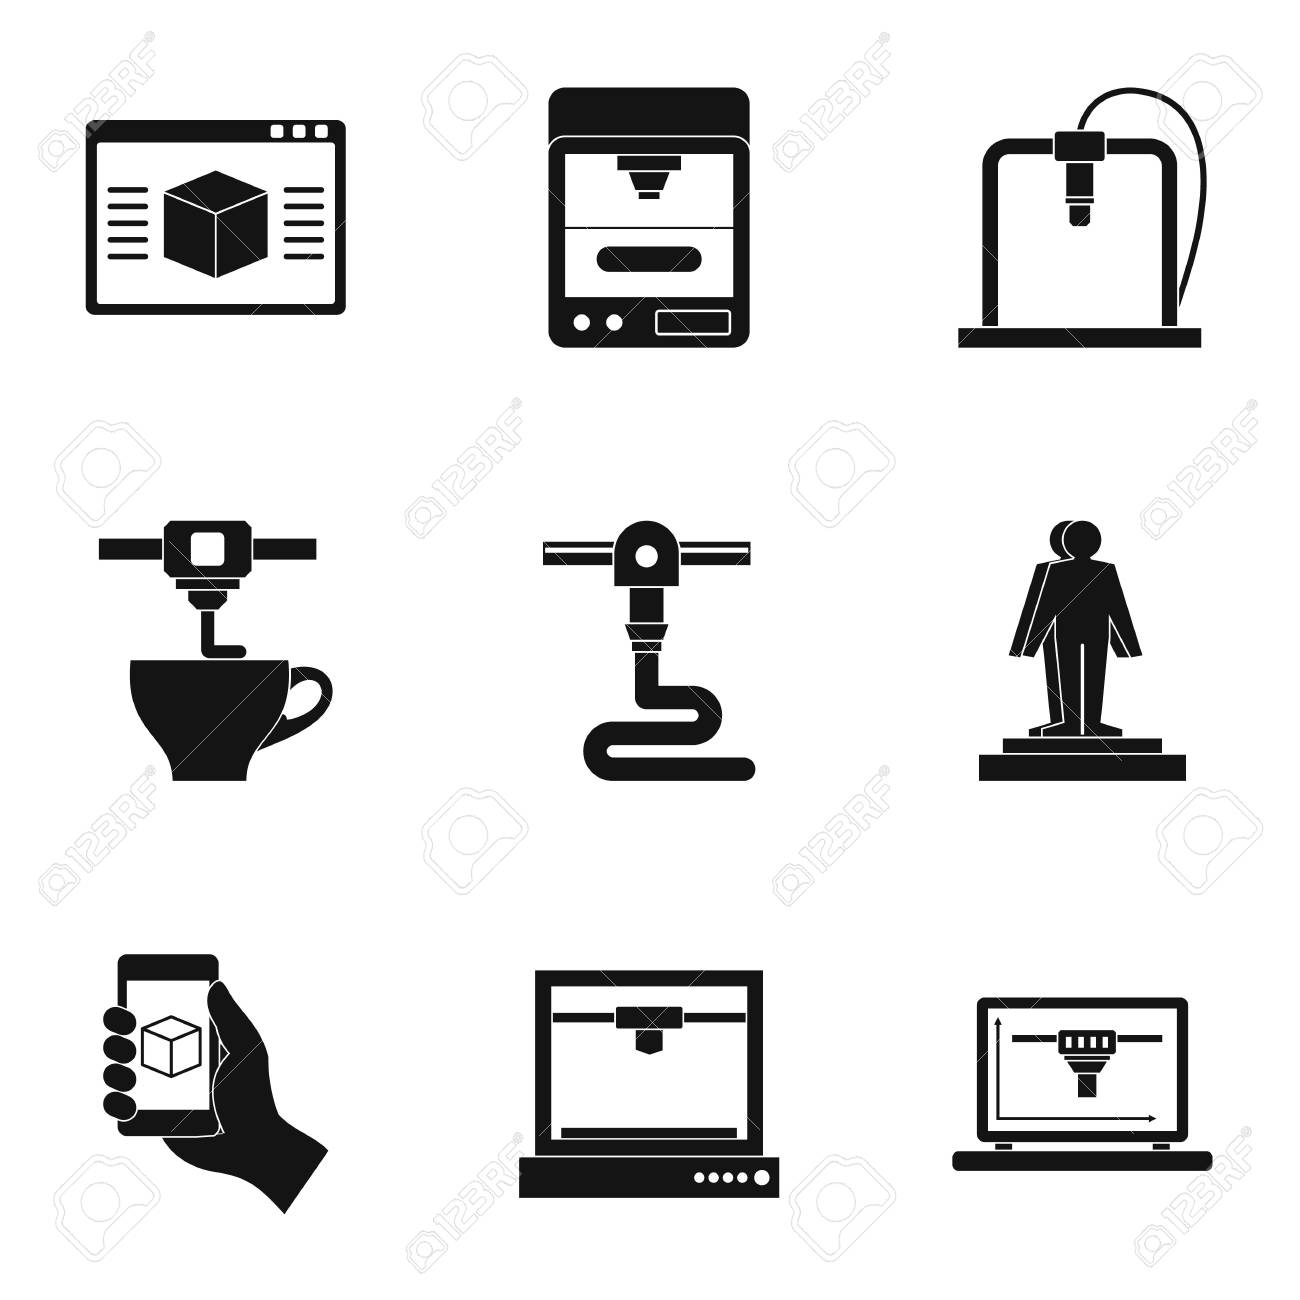 futuristic 3d printer icon set simple set of 9 futuristic 3d royalty free cliparts vectors and stock illustration image 84283226 futuristic 3d printer icon set simple set of 9 futuristic 3d